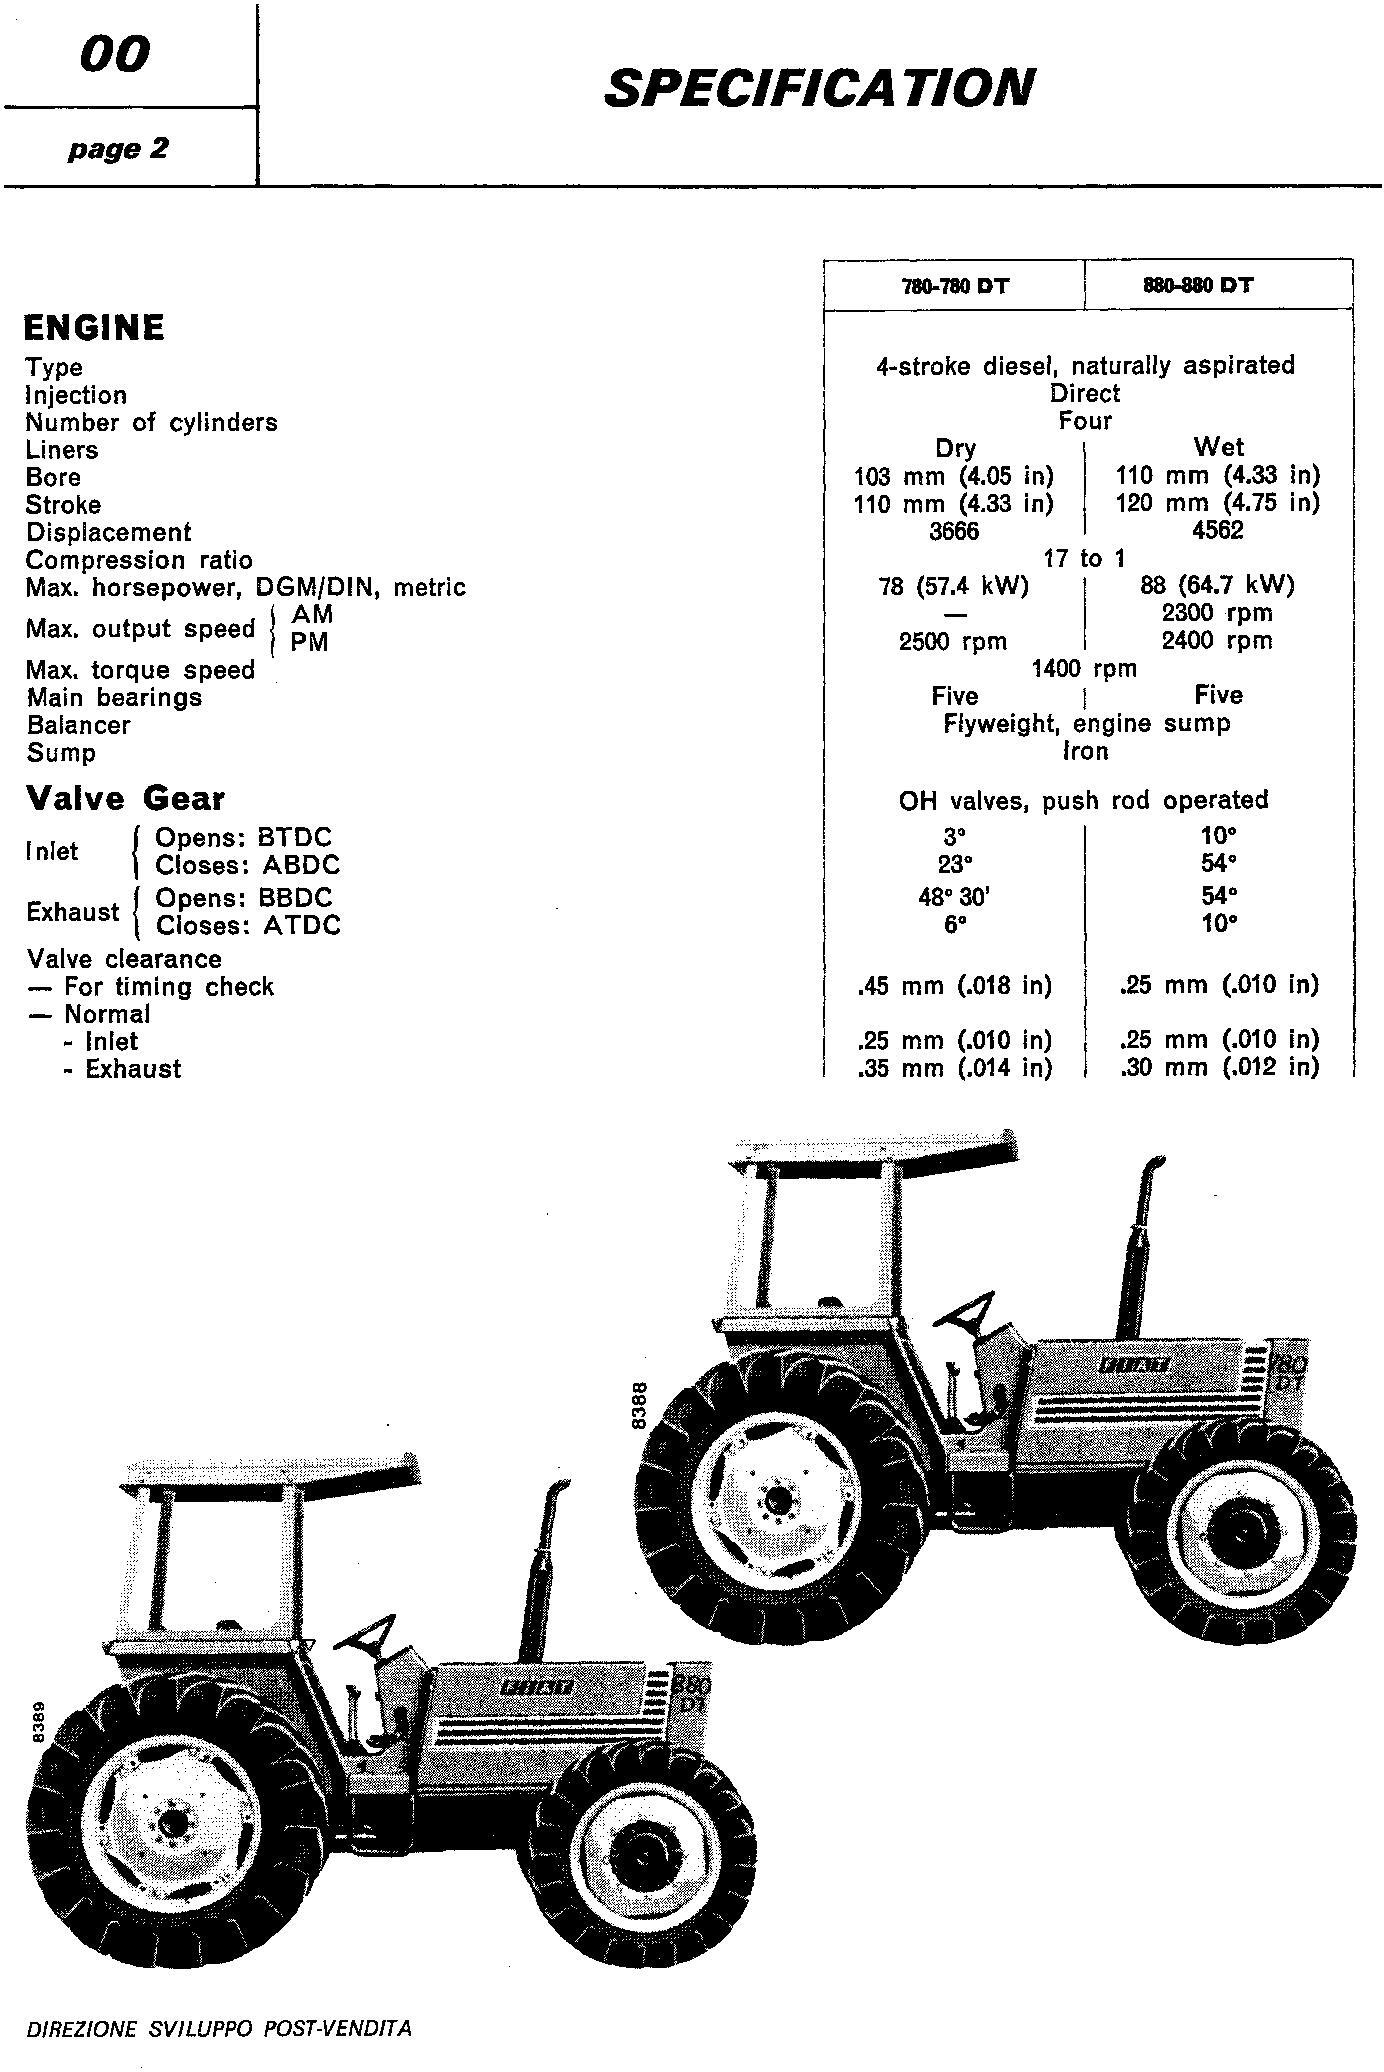 Fiat 780, 780DT, 880, 880DT Tractor Workshop Service Manual (6035420100) - 1